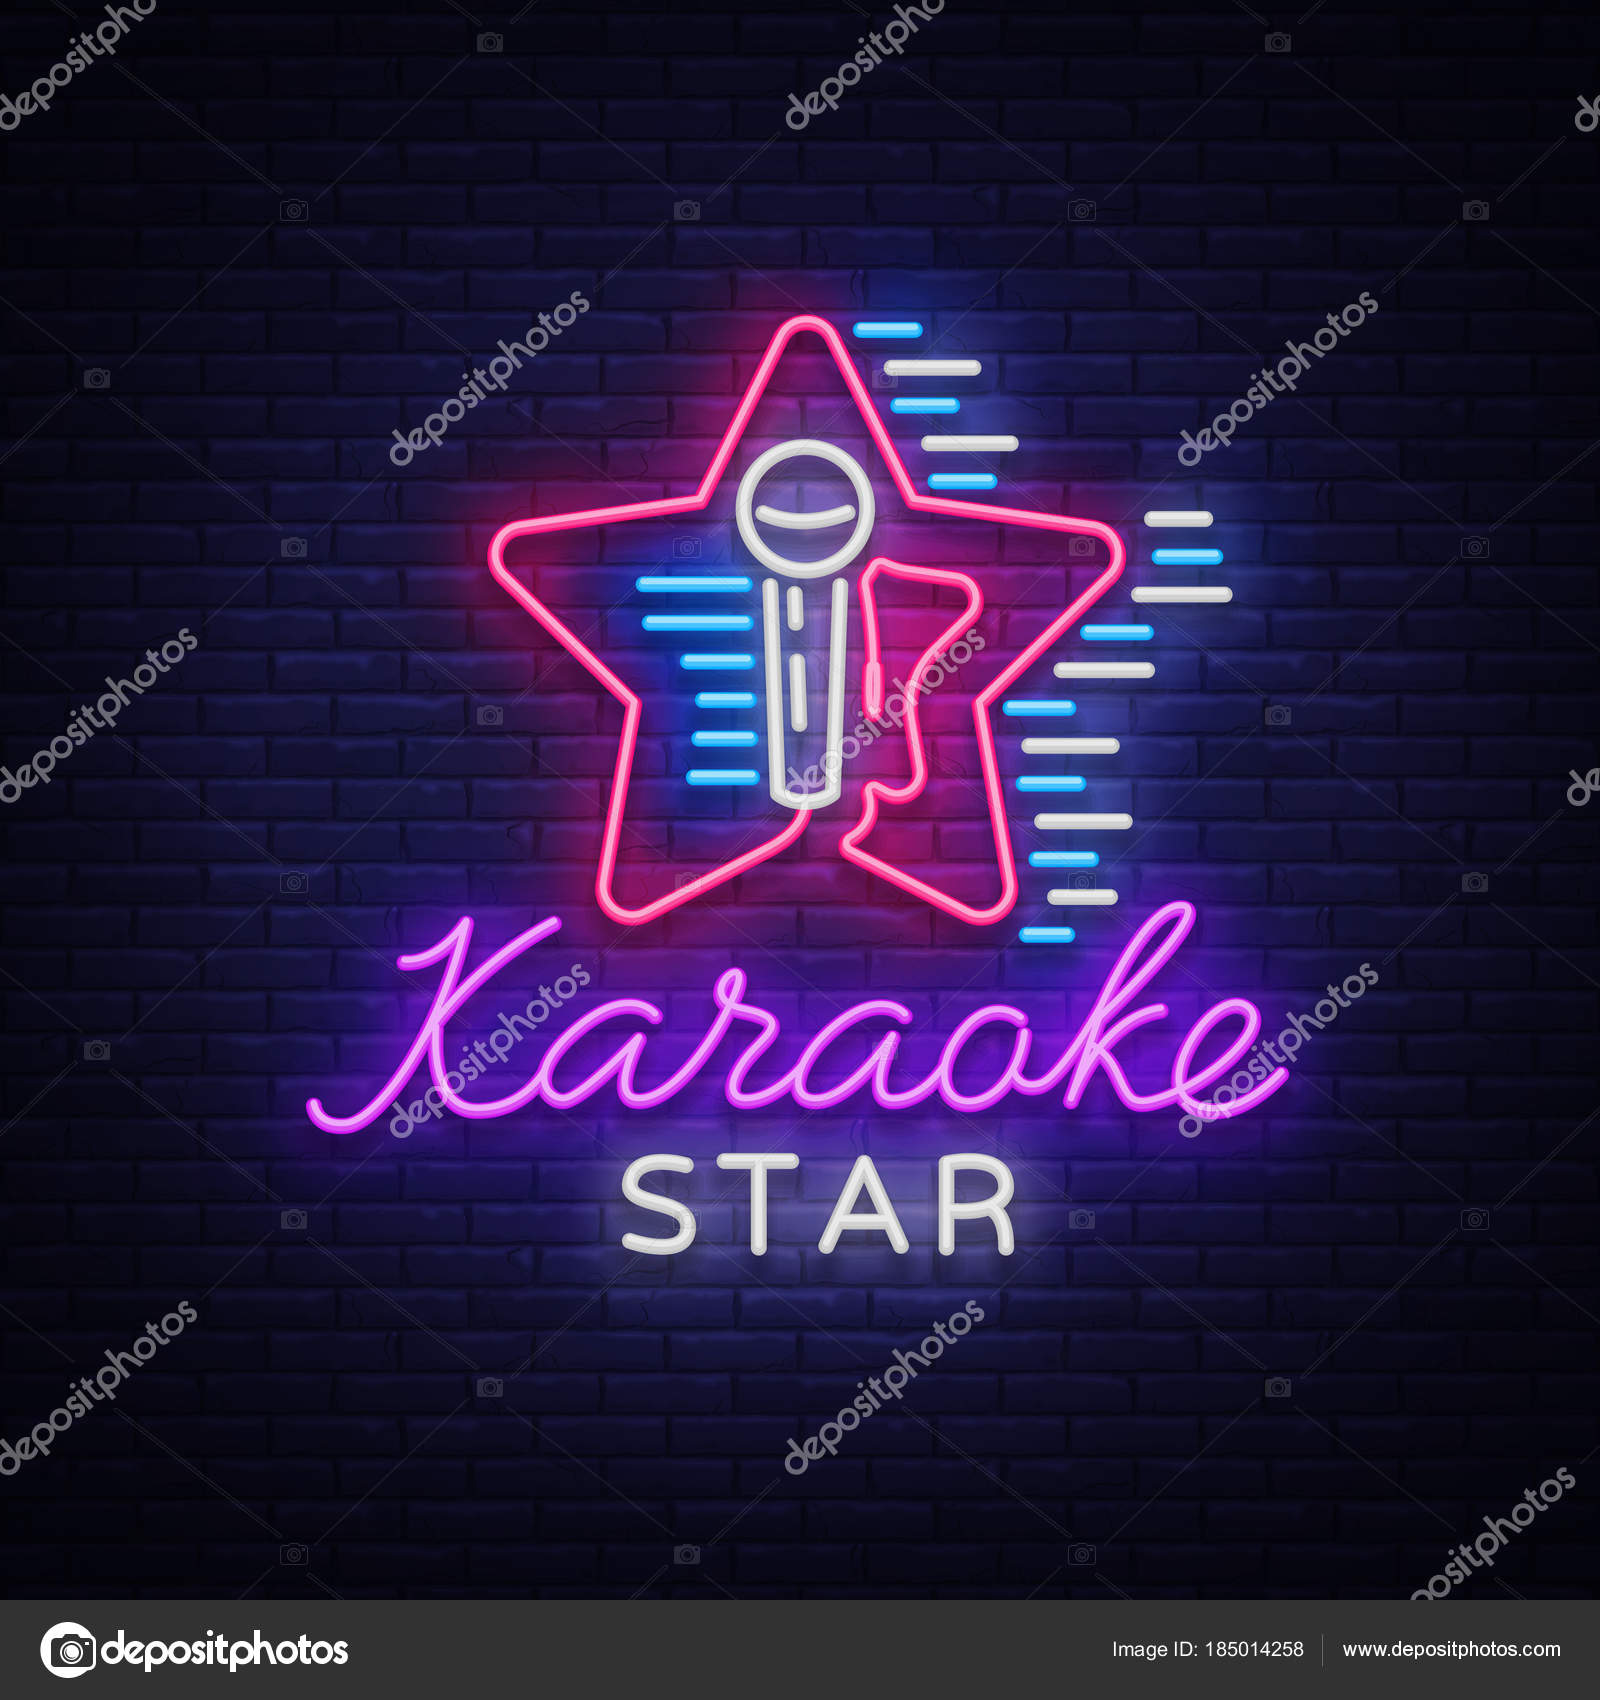 Karaoke Star Vector  Neon sign, luminous logo, symbol, light